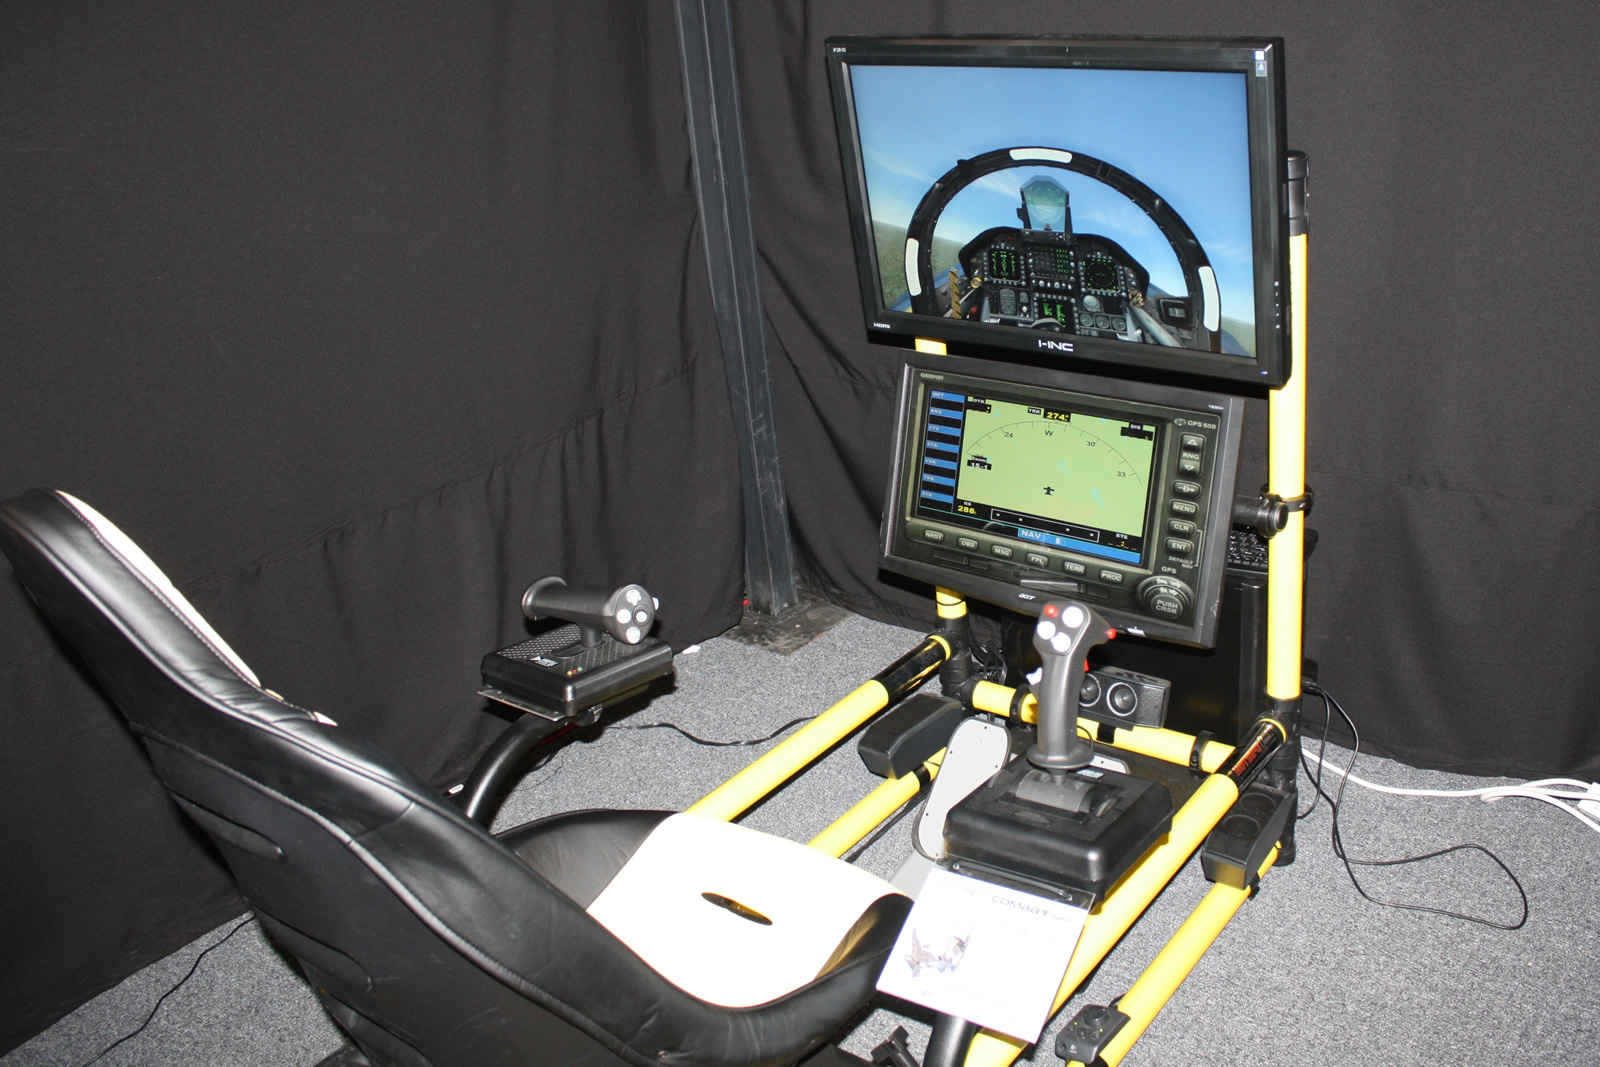 Simulation Items from EAA Airventure 2010 - Hardware Reviews